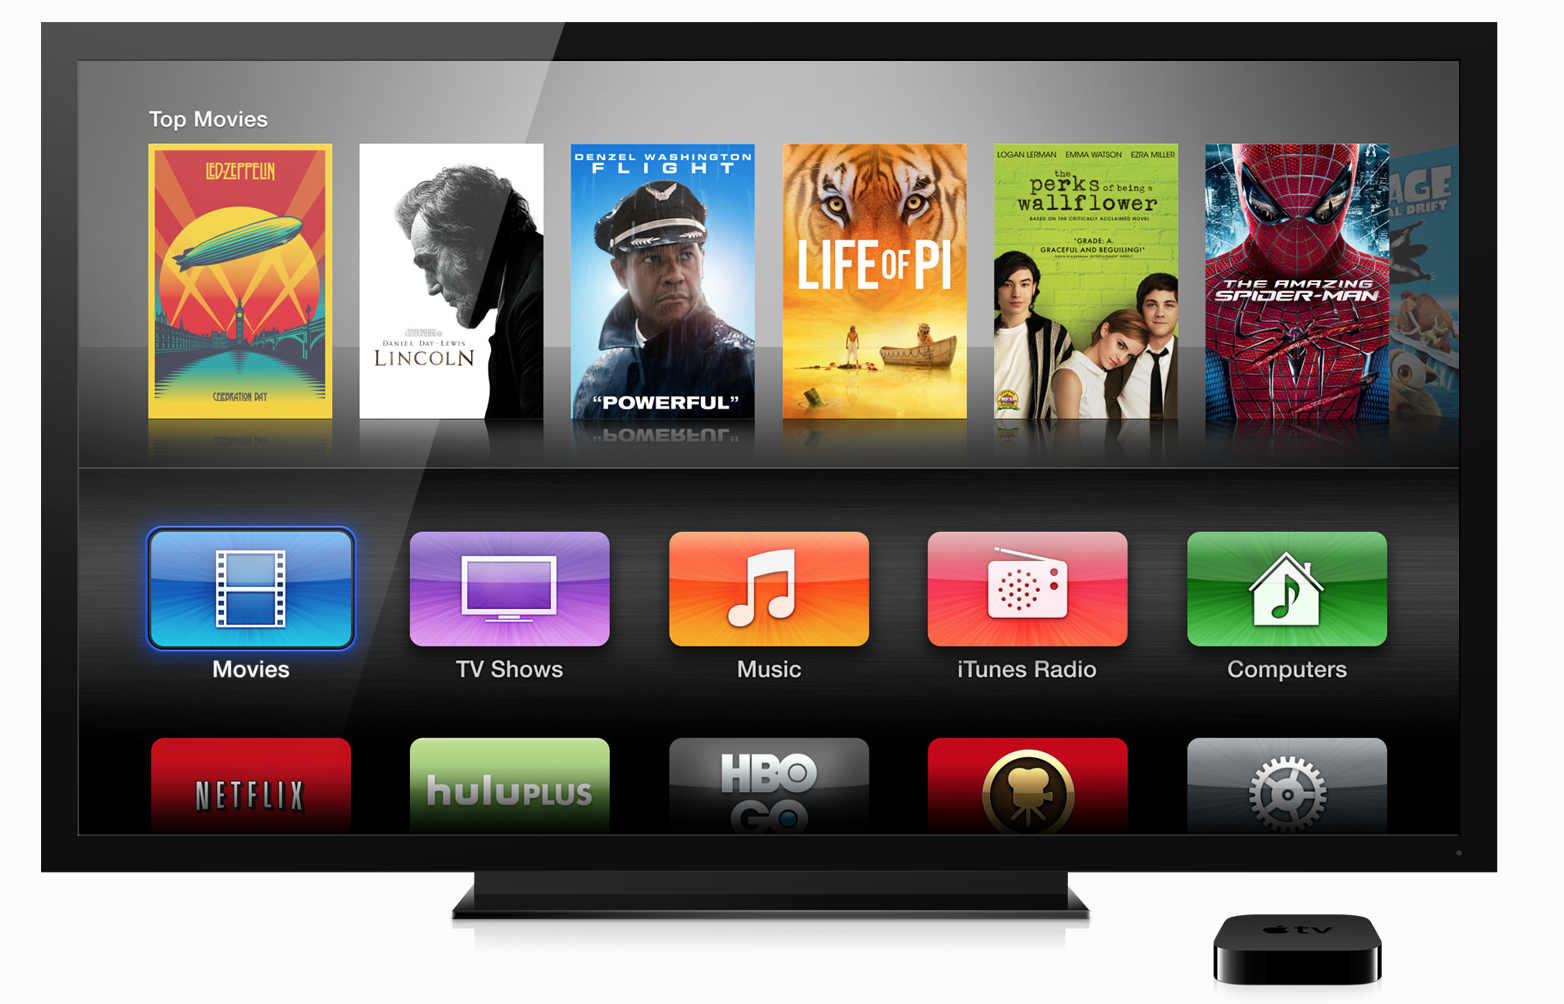 Apple-TV Screen